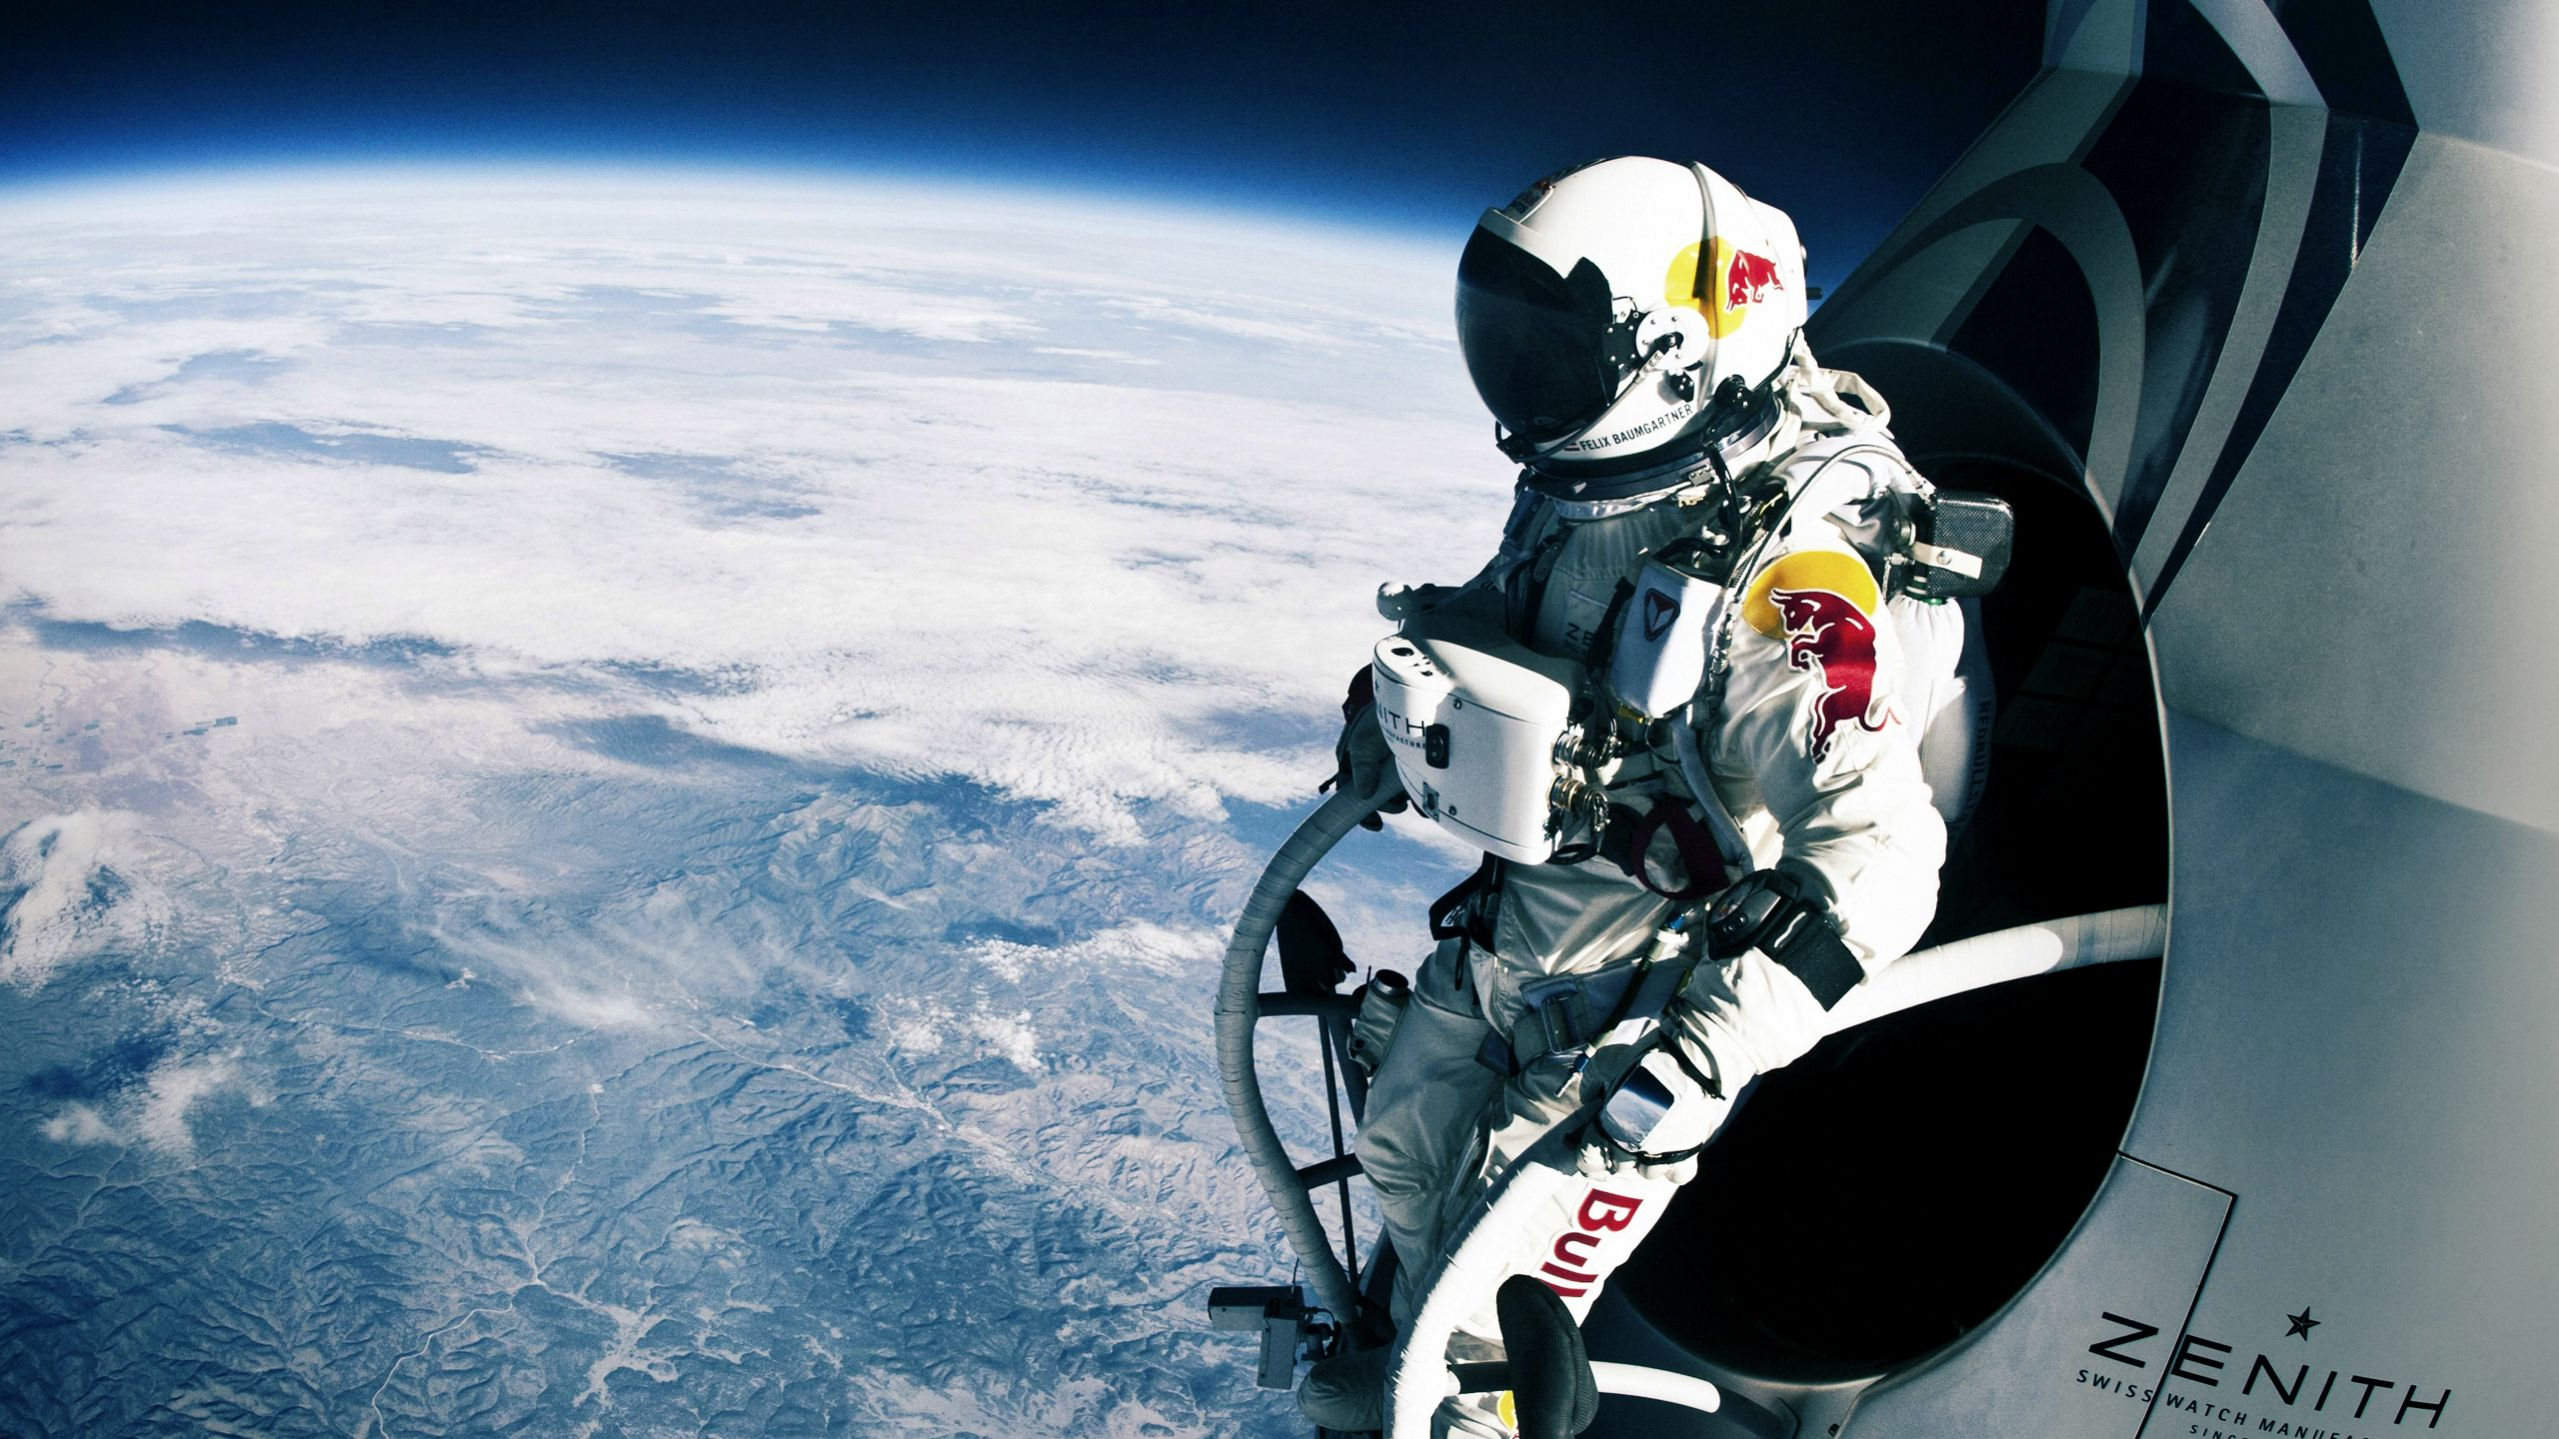 stunt plane free fall with Tags on Markets Morning Stocks Stall Crude Iron Ore The Aussie And Kiwi Fall As We All Wait For The Fed furthermore Dropzone Inflatable Stunt Jump besides Gta5 Xbox360 Cheats as well Watch in addition Rupauls Drag Race n 4935933.